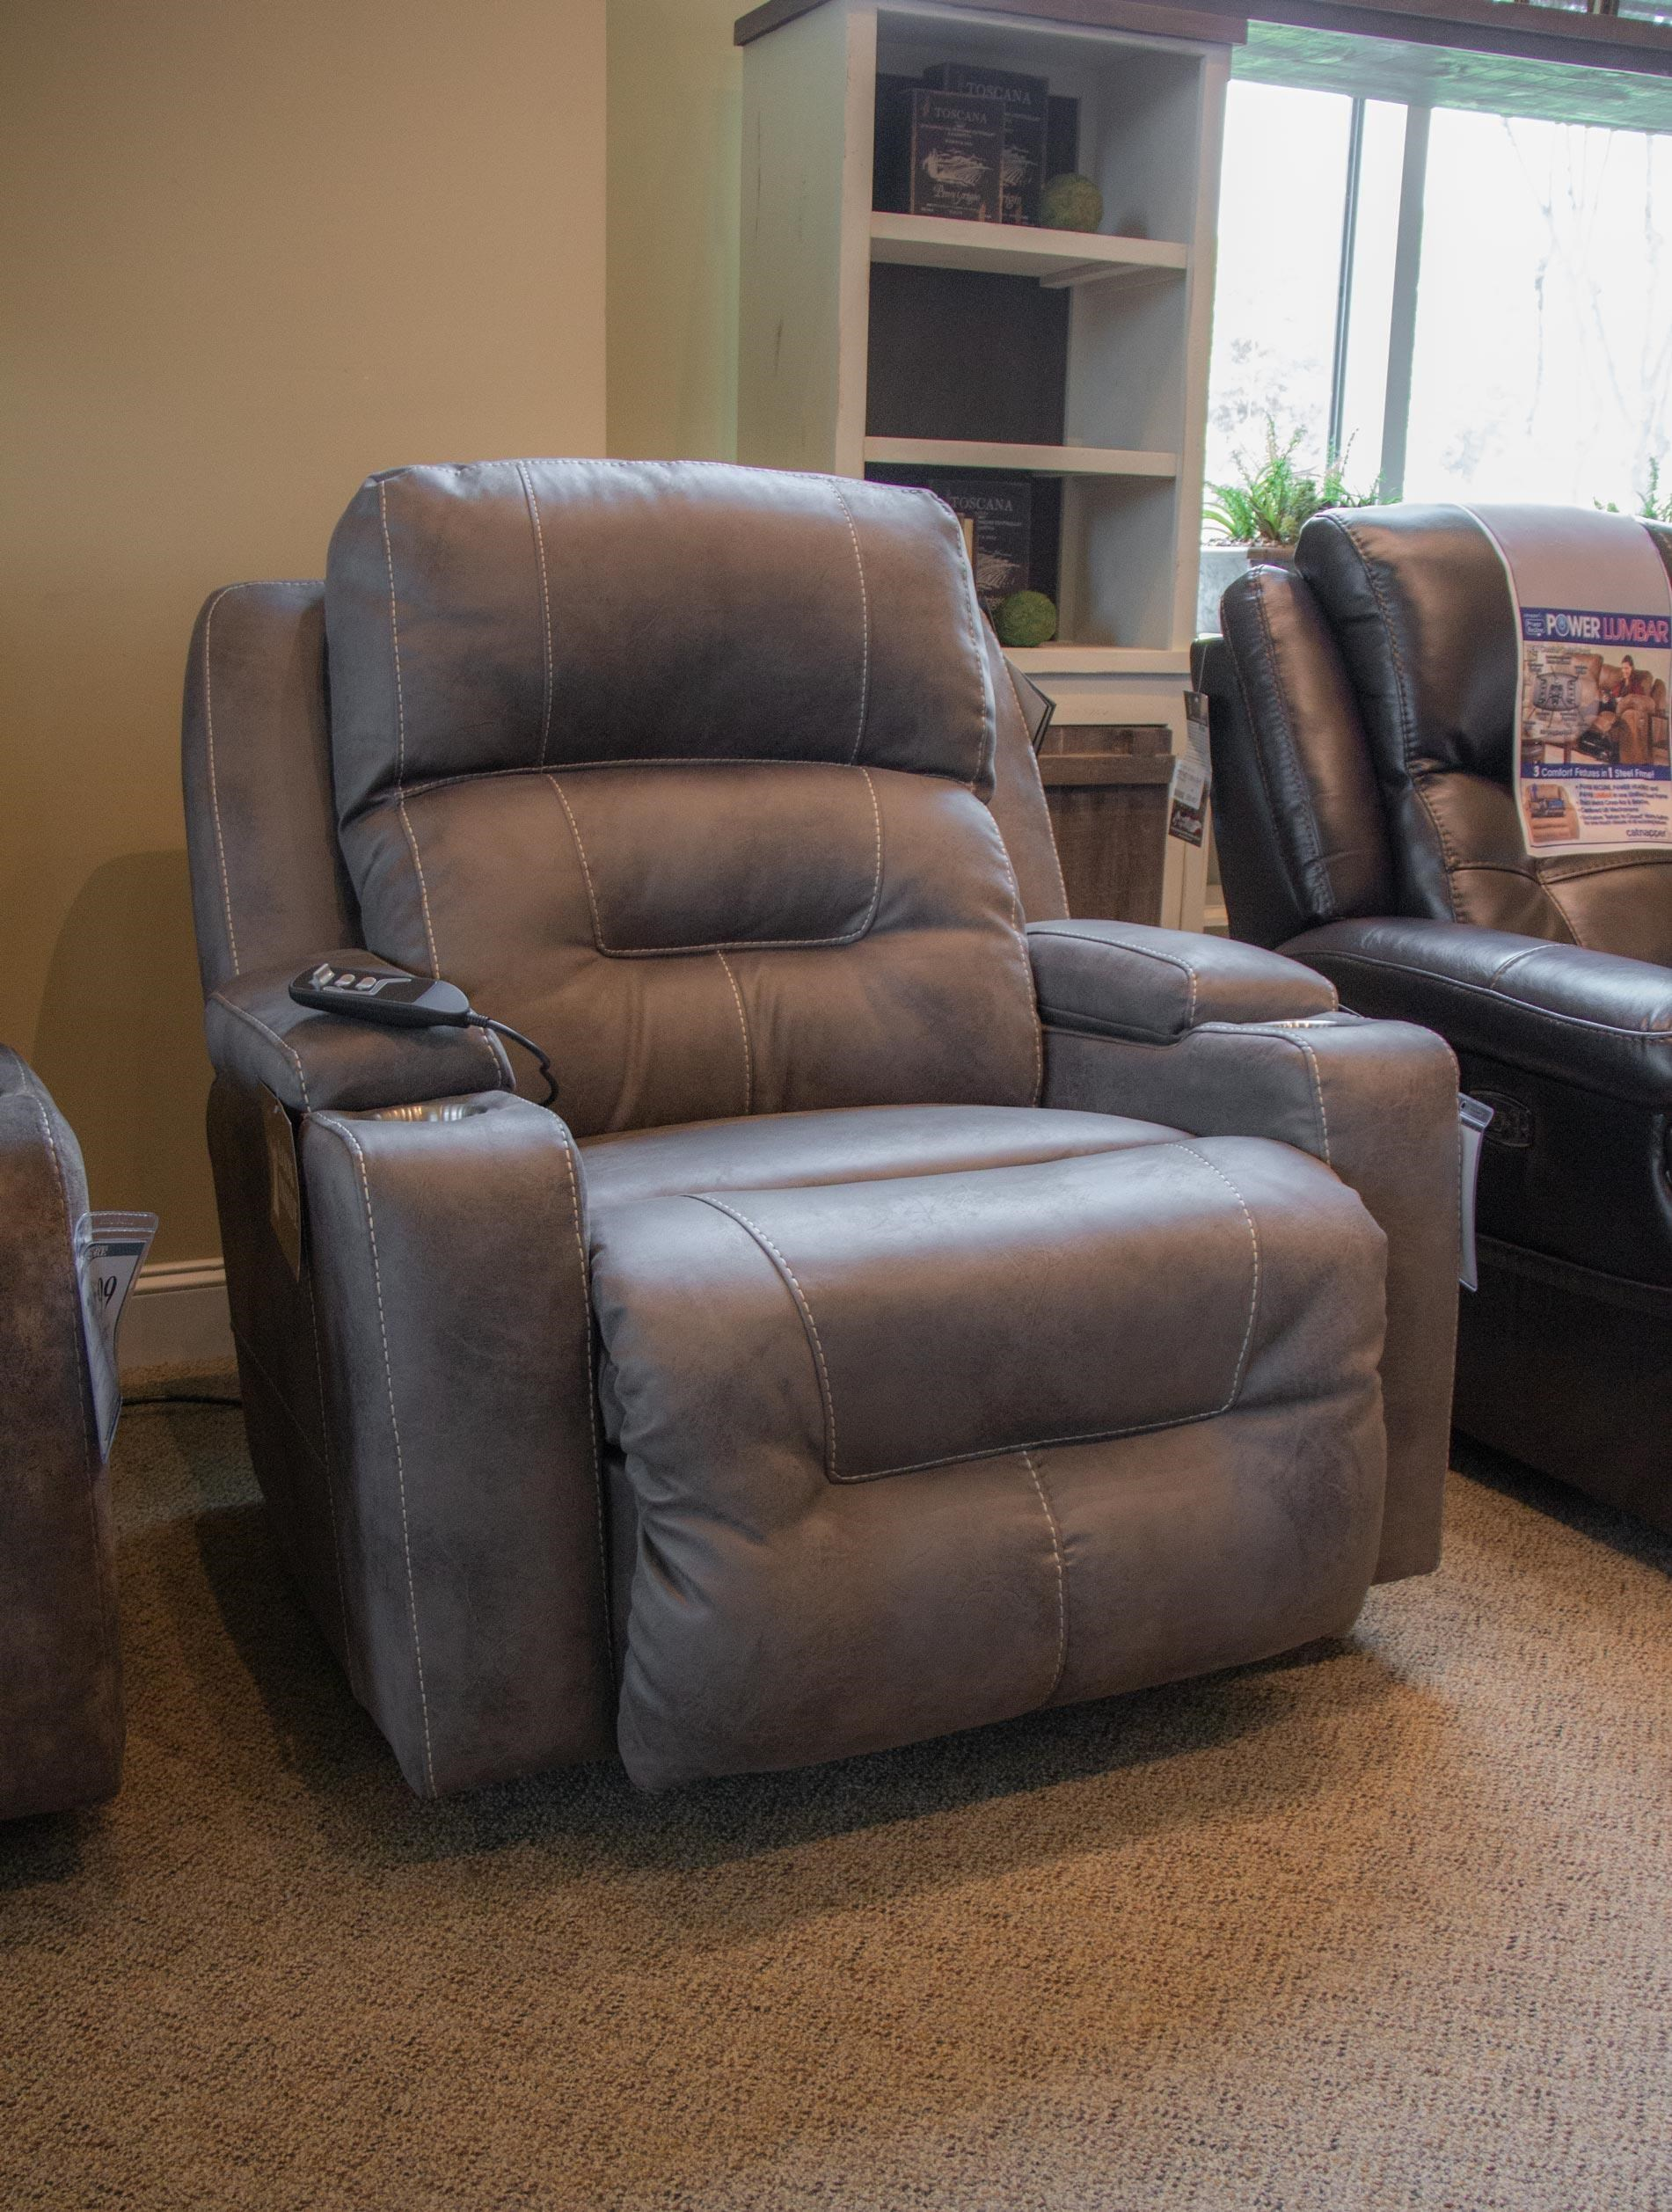 Terrific Commander Triple Triple Power Rocker Recliner With Lig Dailytribune Chair Design For Home Dailytribuneorg